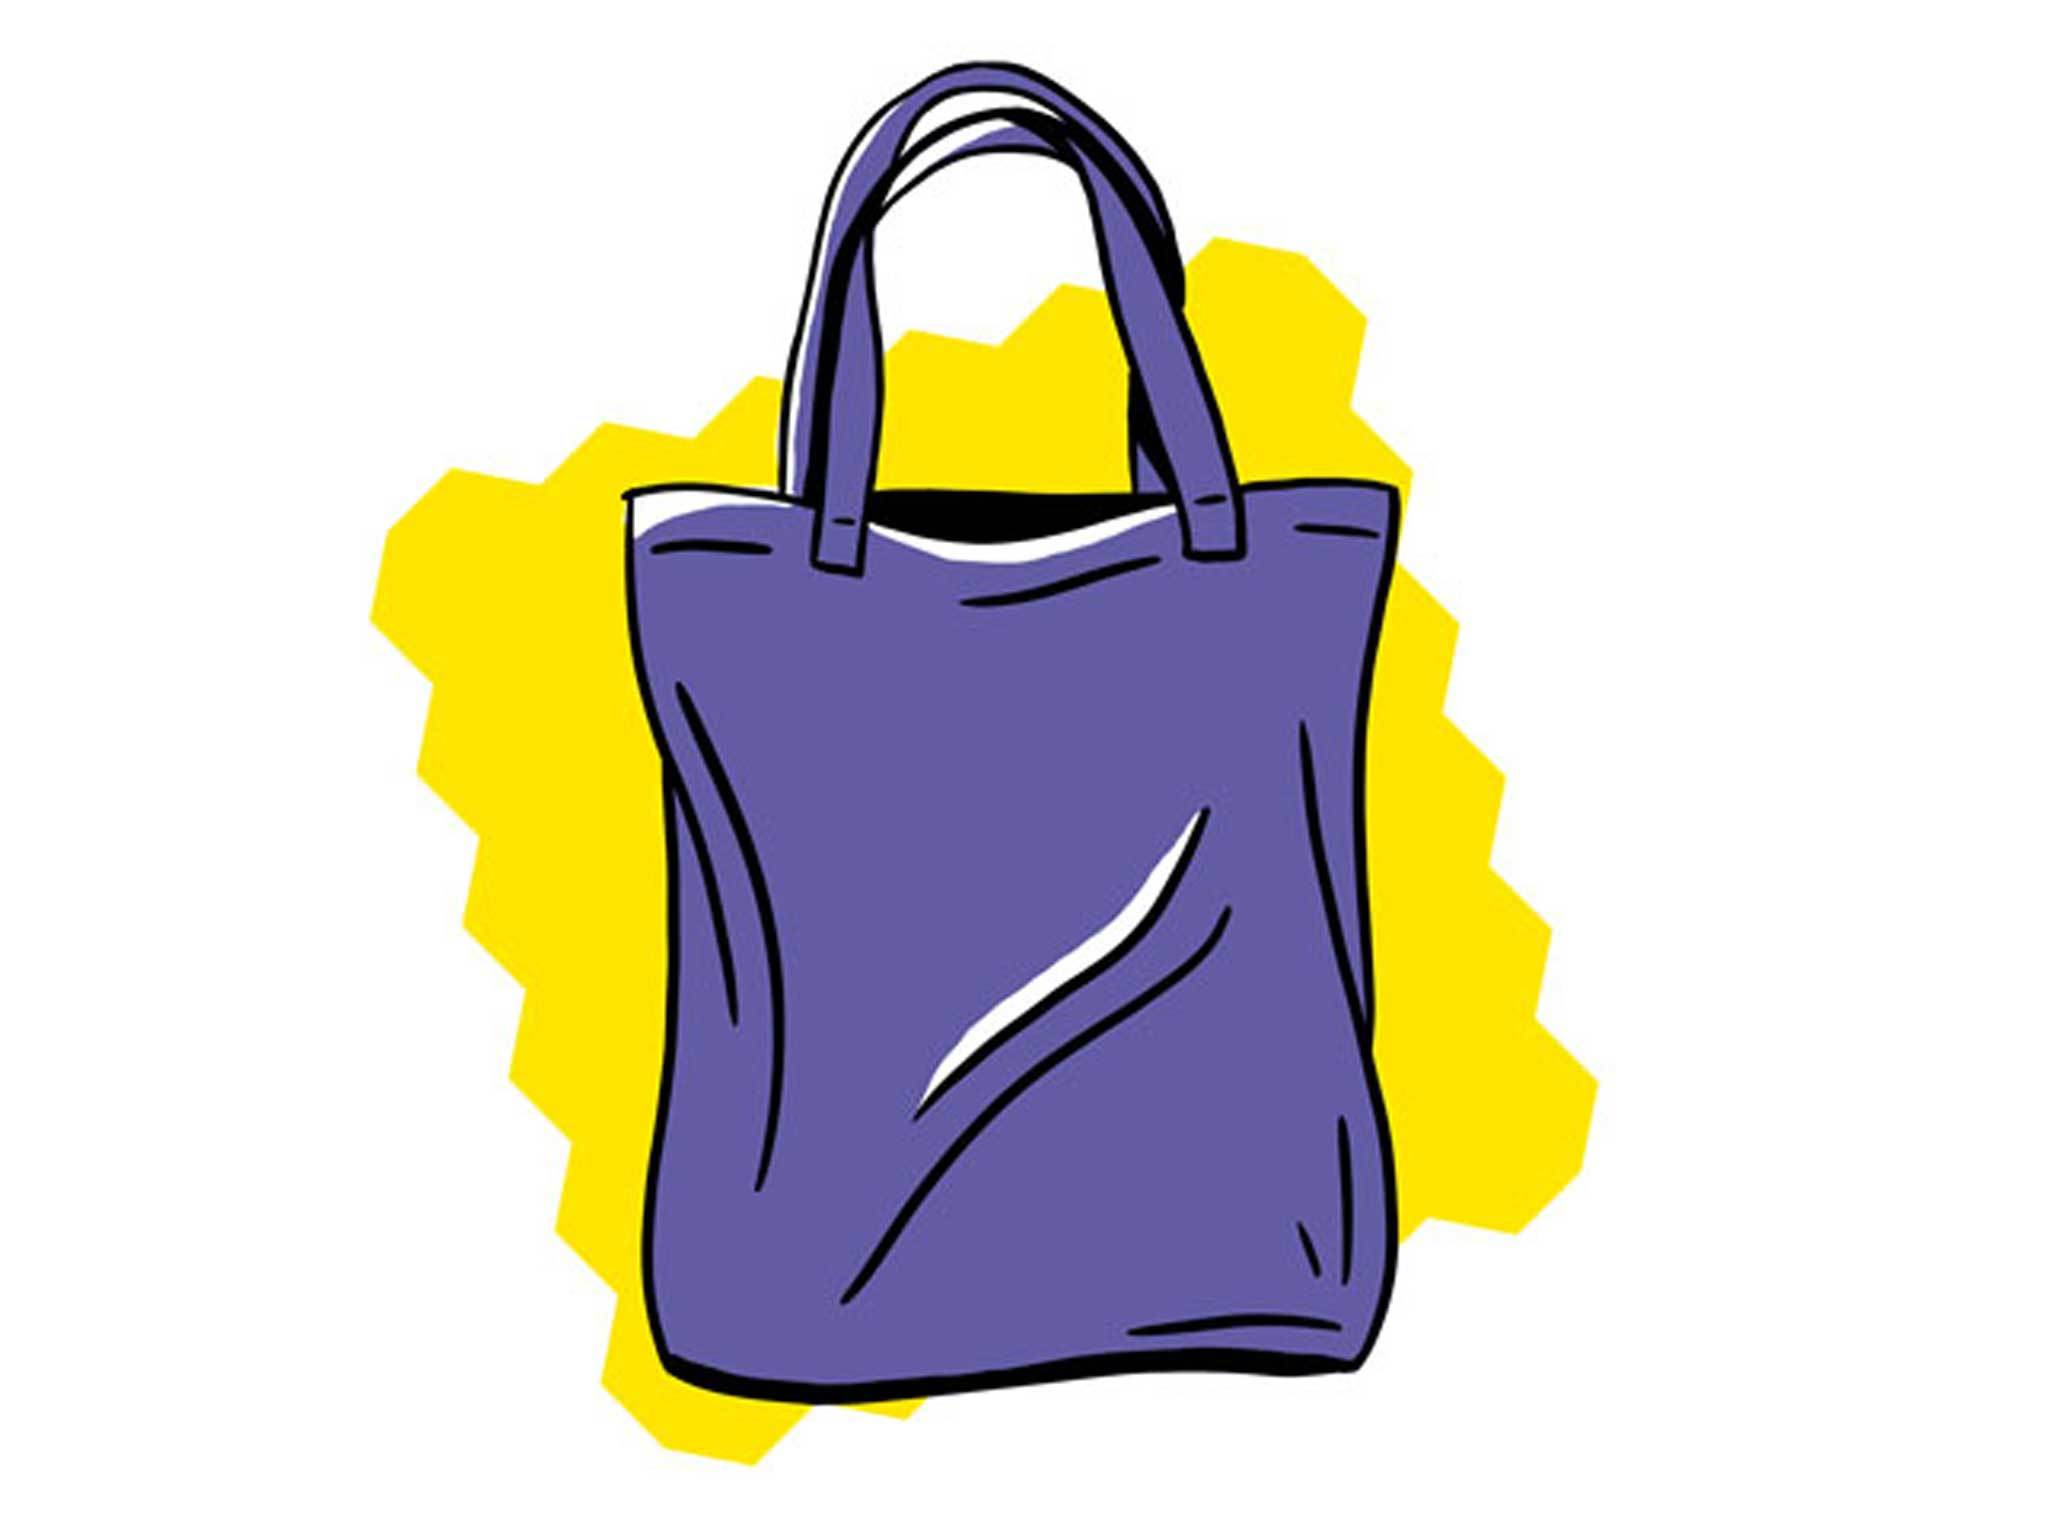 Tote bag graphic for Make Your Own feature